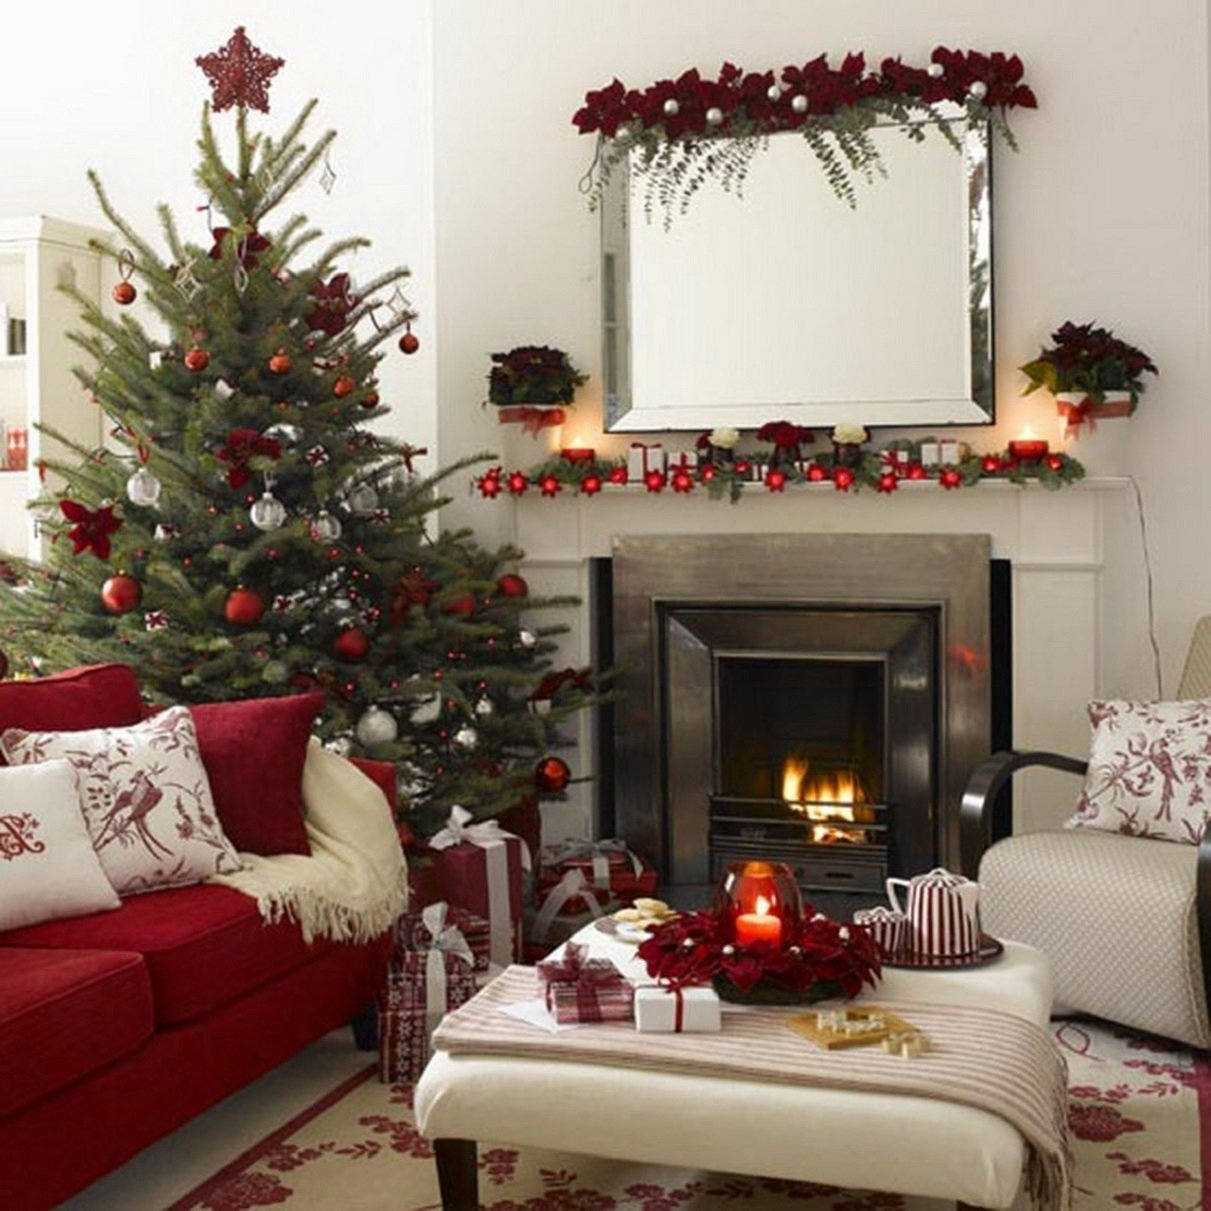 10 Lovely Christmas Decoration Ideas For Apartments apartment traditional apartment interior design warm living room 2020